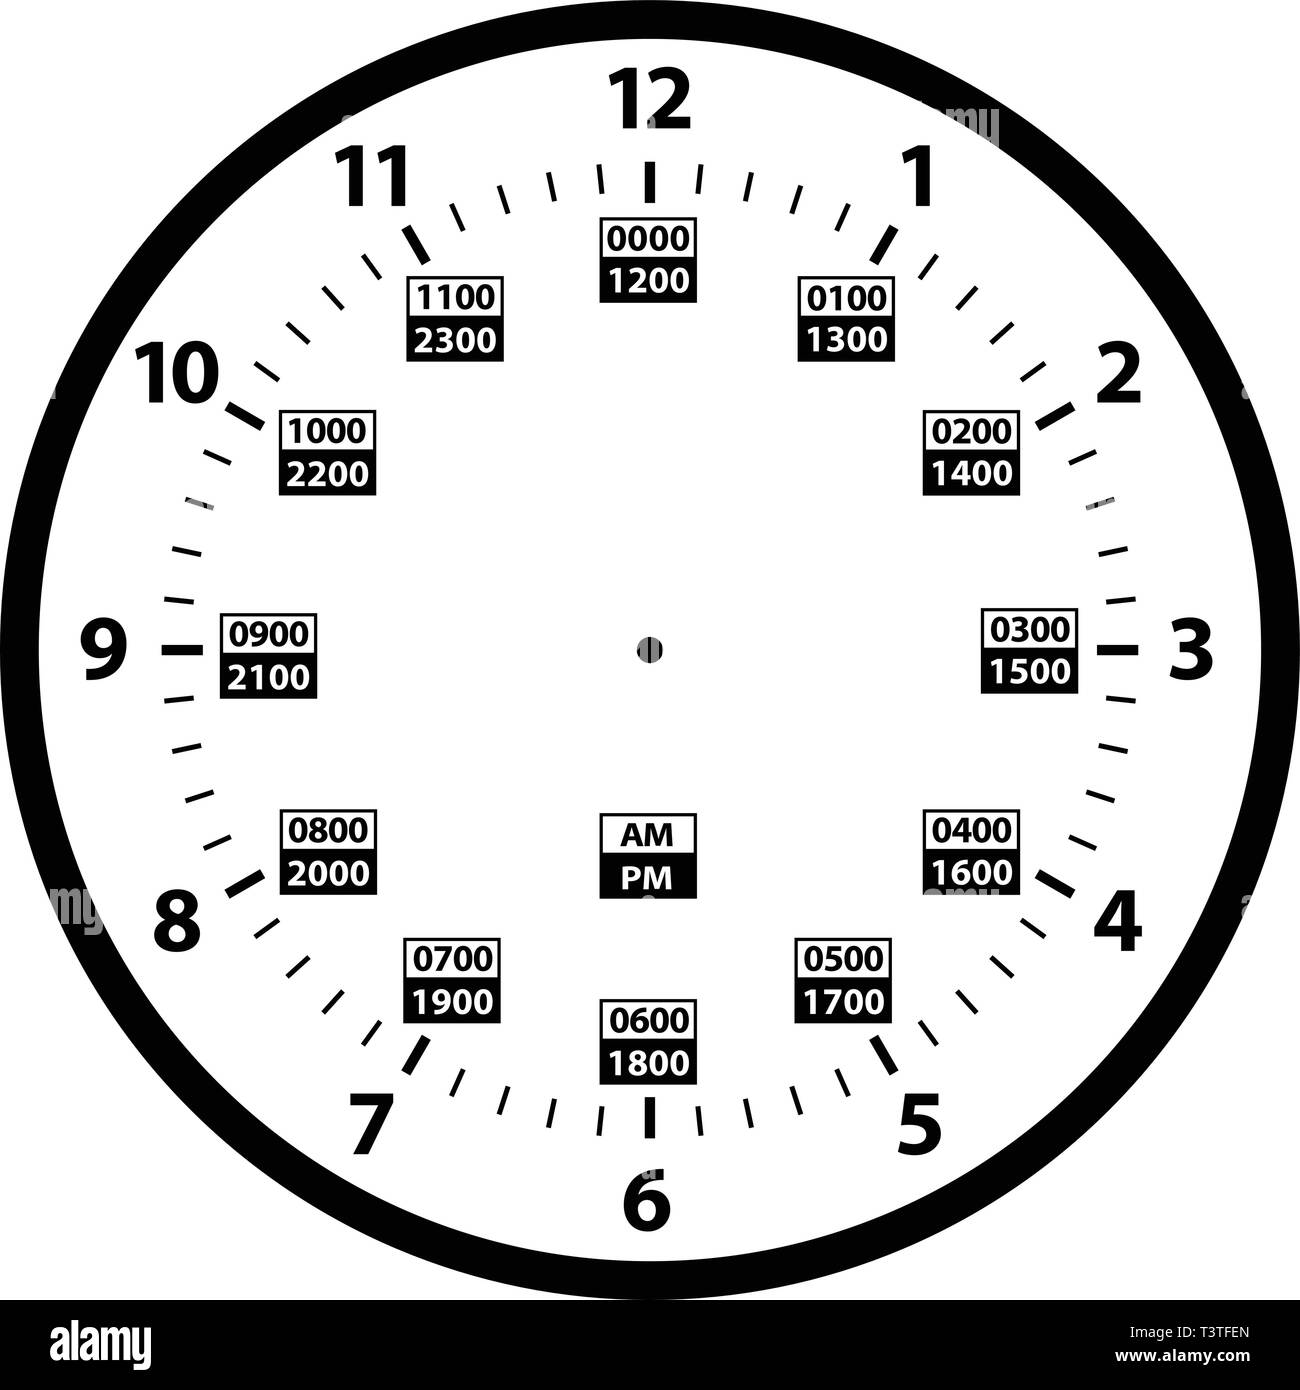 Military Time Clock >> 12 To 24 Hour Military Time Clock Conversion Isolated Vector